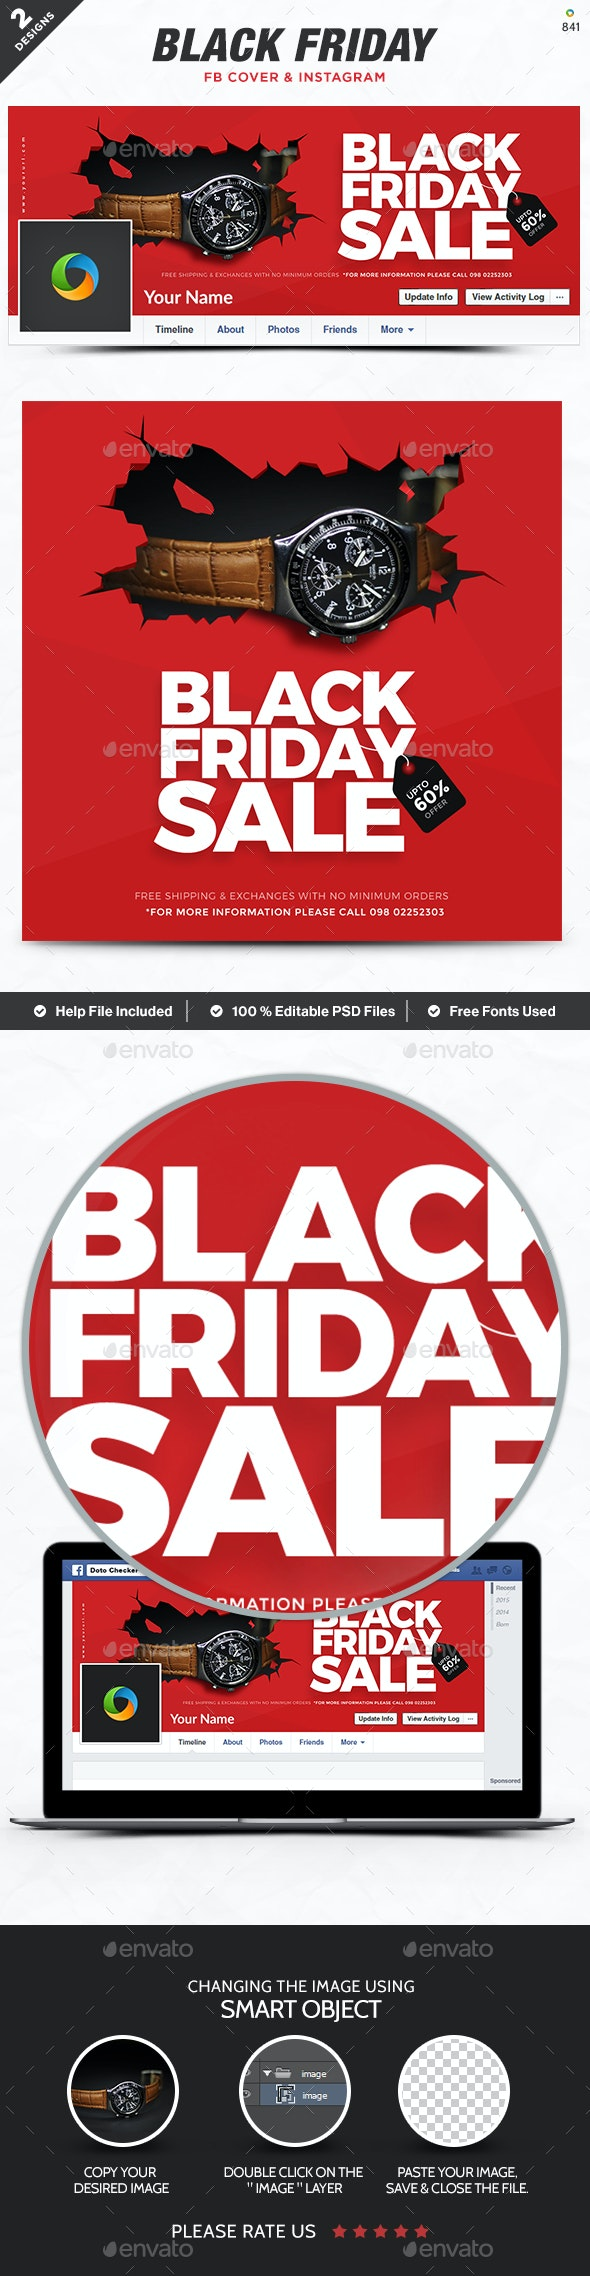 Black Friday  Facebook Cover & Instagram Templates - 2 Designs - Miscellaneous Social Media